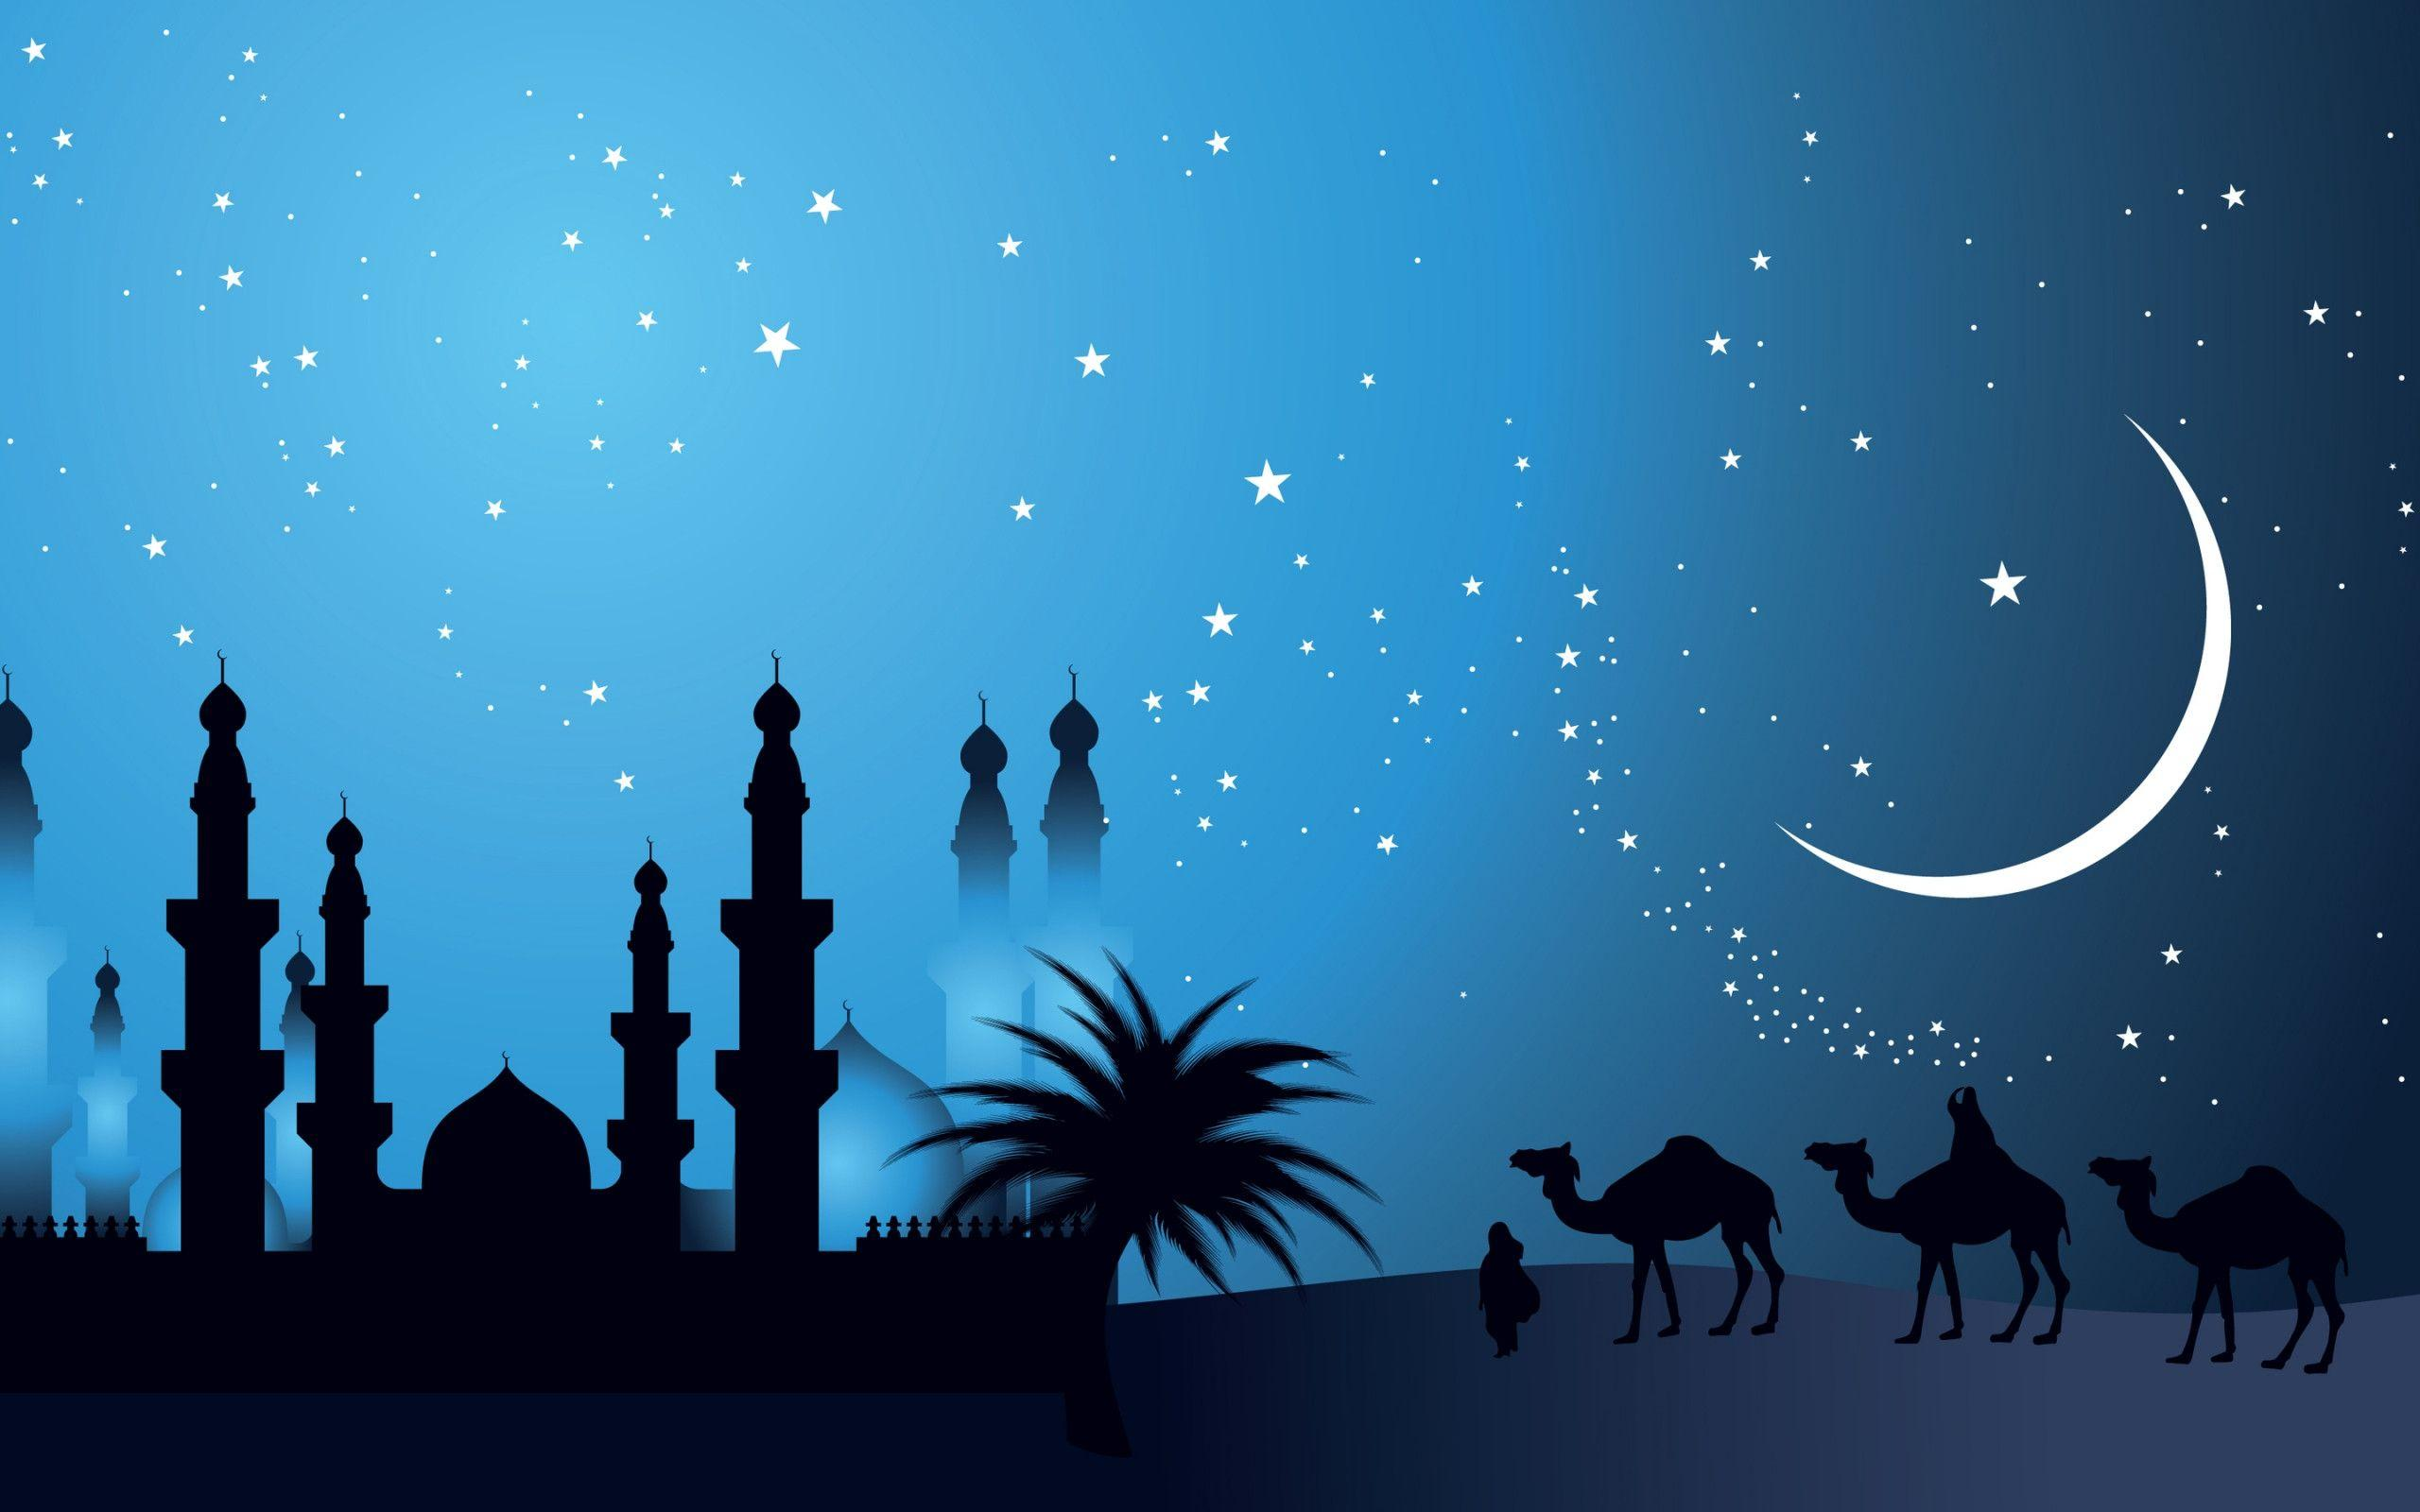 Bedwelming Islamic Wallpapers HD 2017 - Wallpaper Cave #FS72